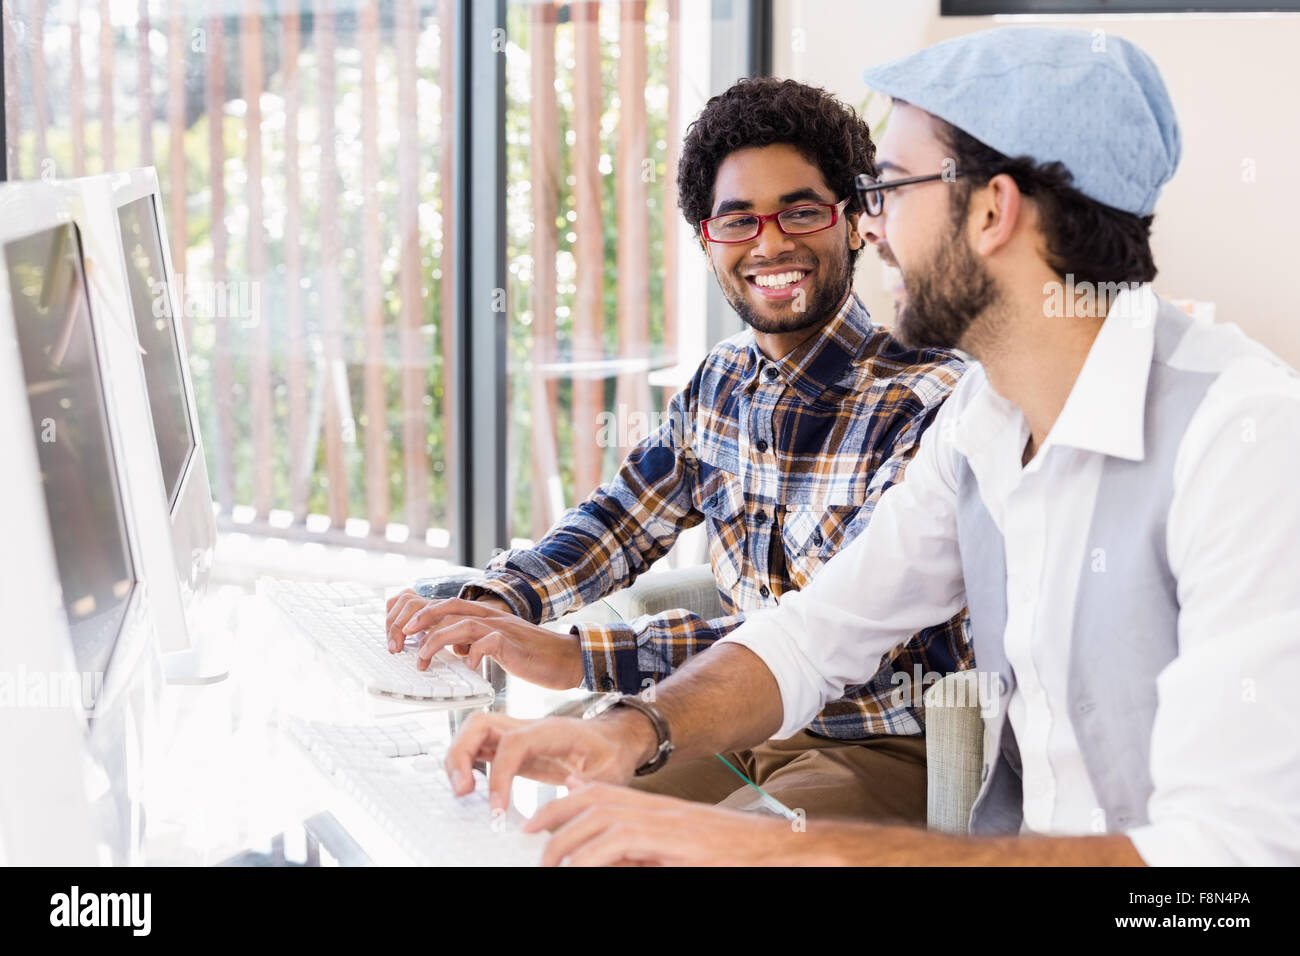 Smiling gay couple talking while working on computers - Stock Image